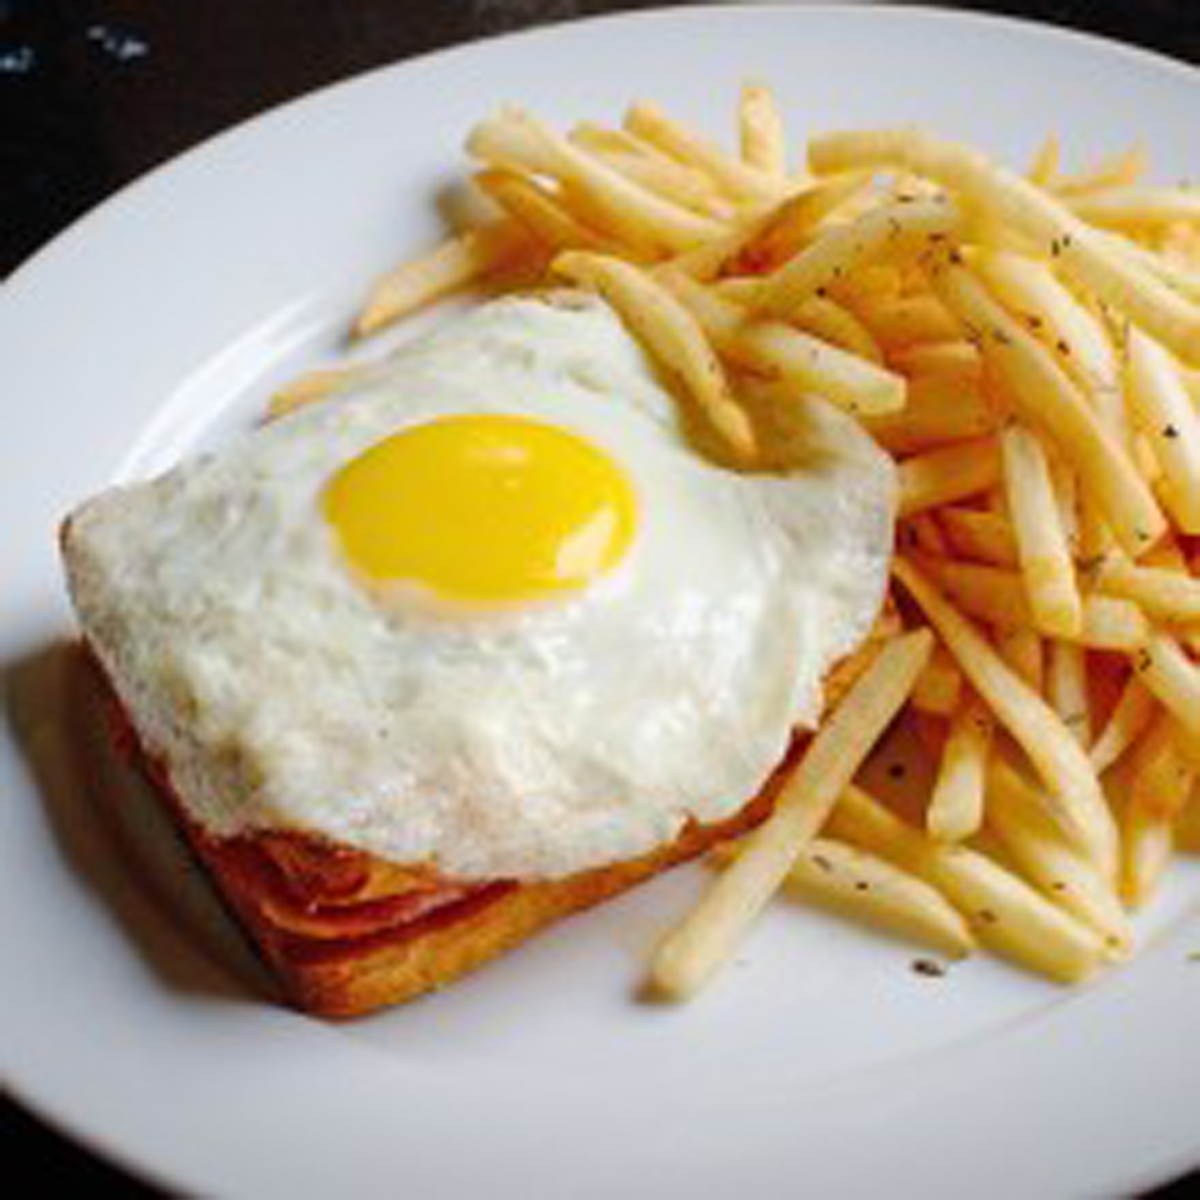 croque-madame_same_as_above_but_with_an_egg_sunny_side_up_13.50